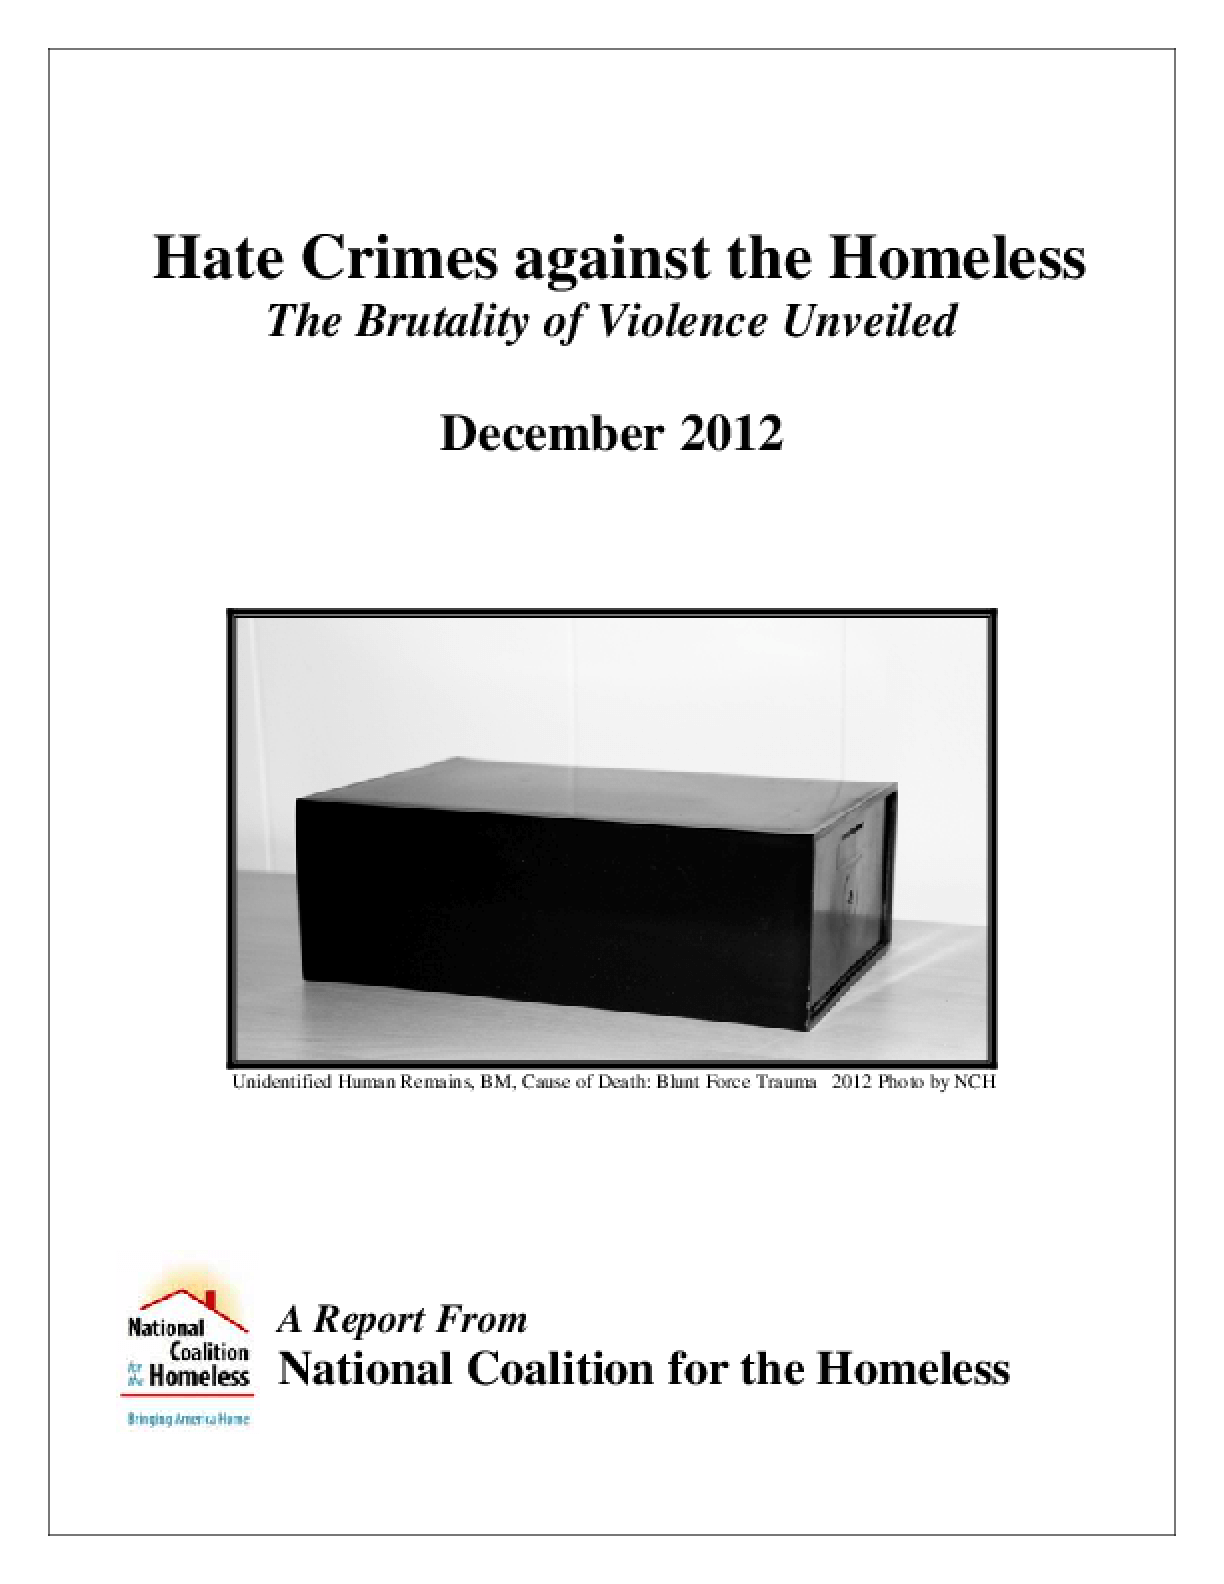 Hate Crimes against the Homeless: The Brutality of Violence Unveiled